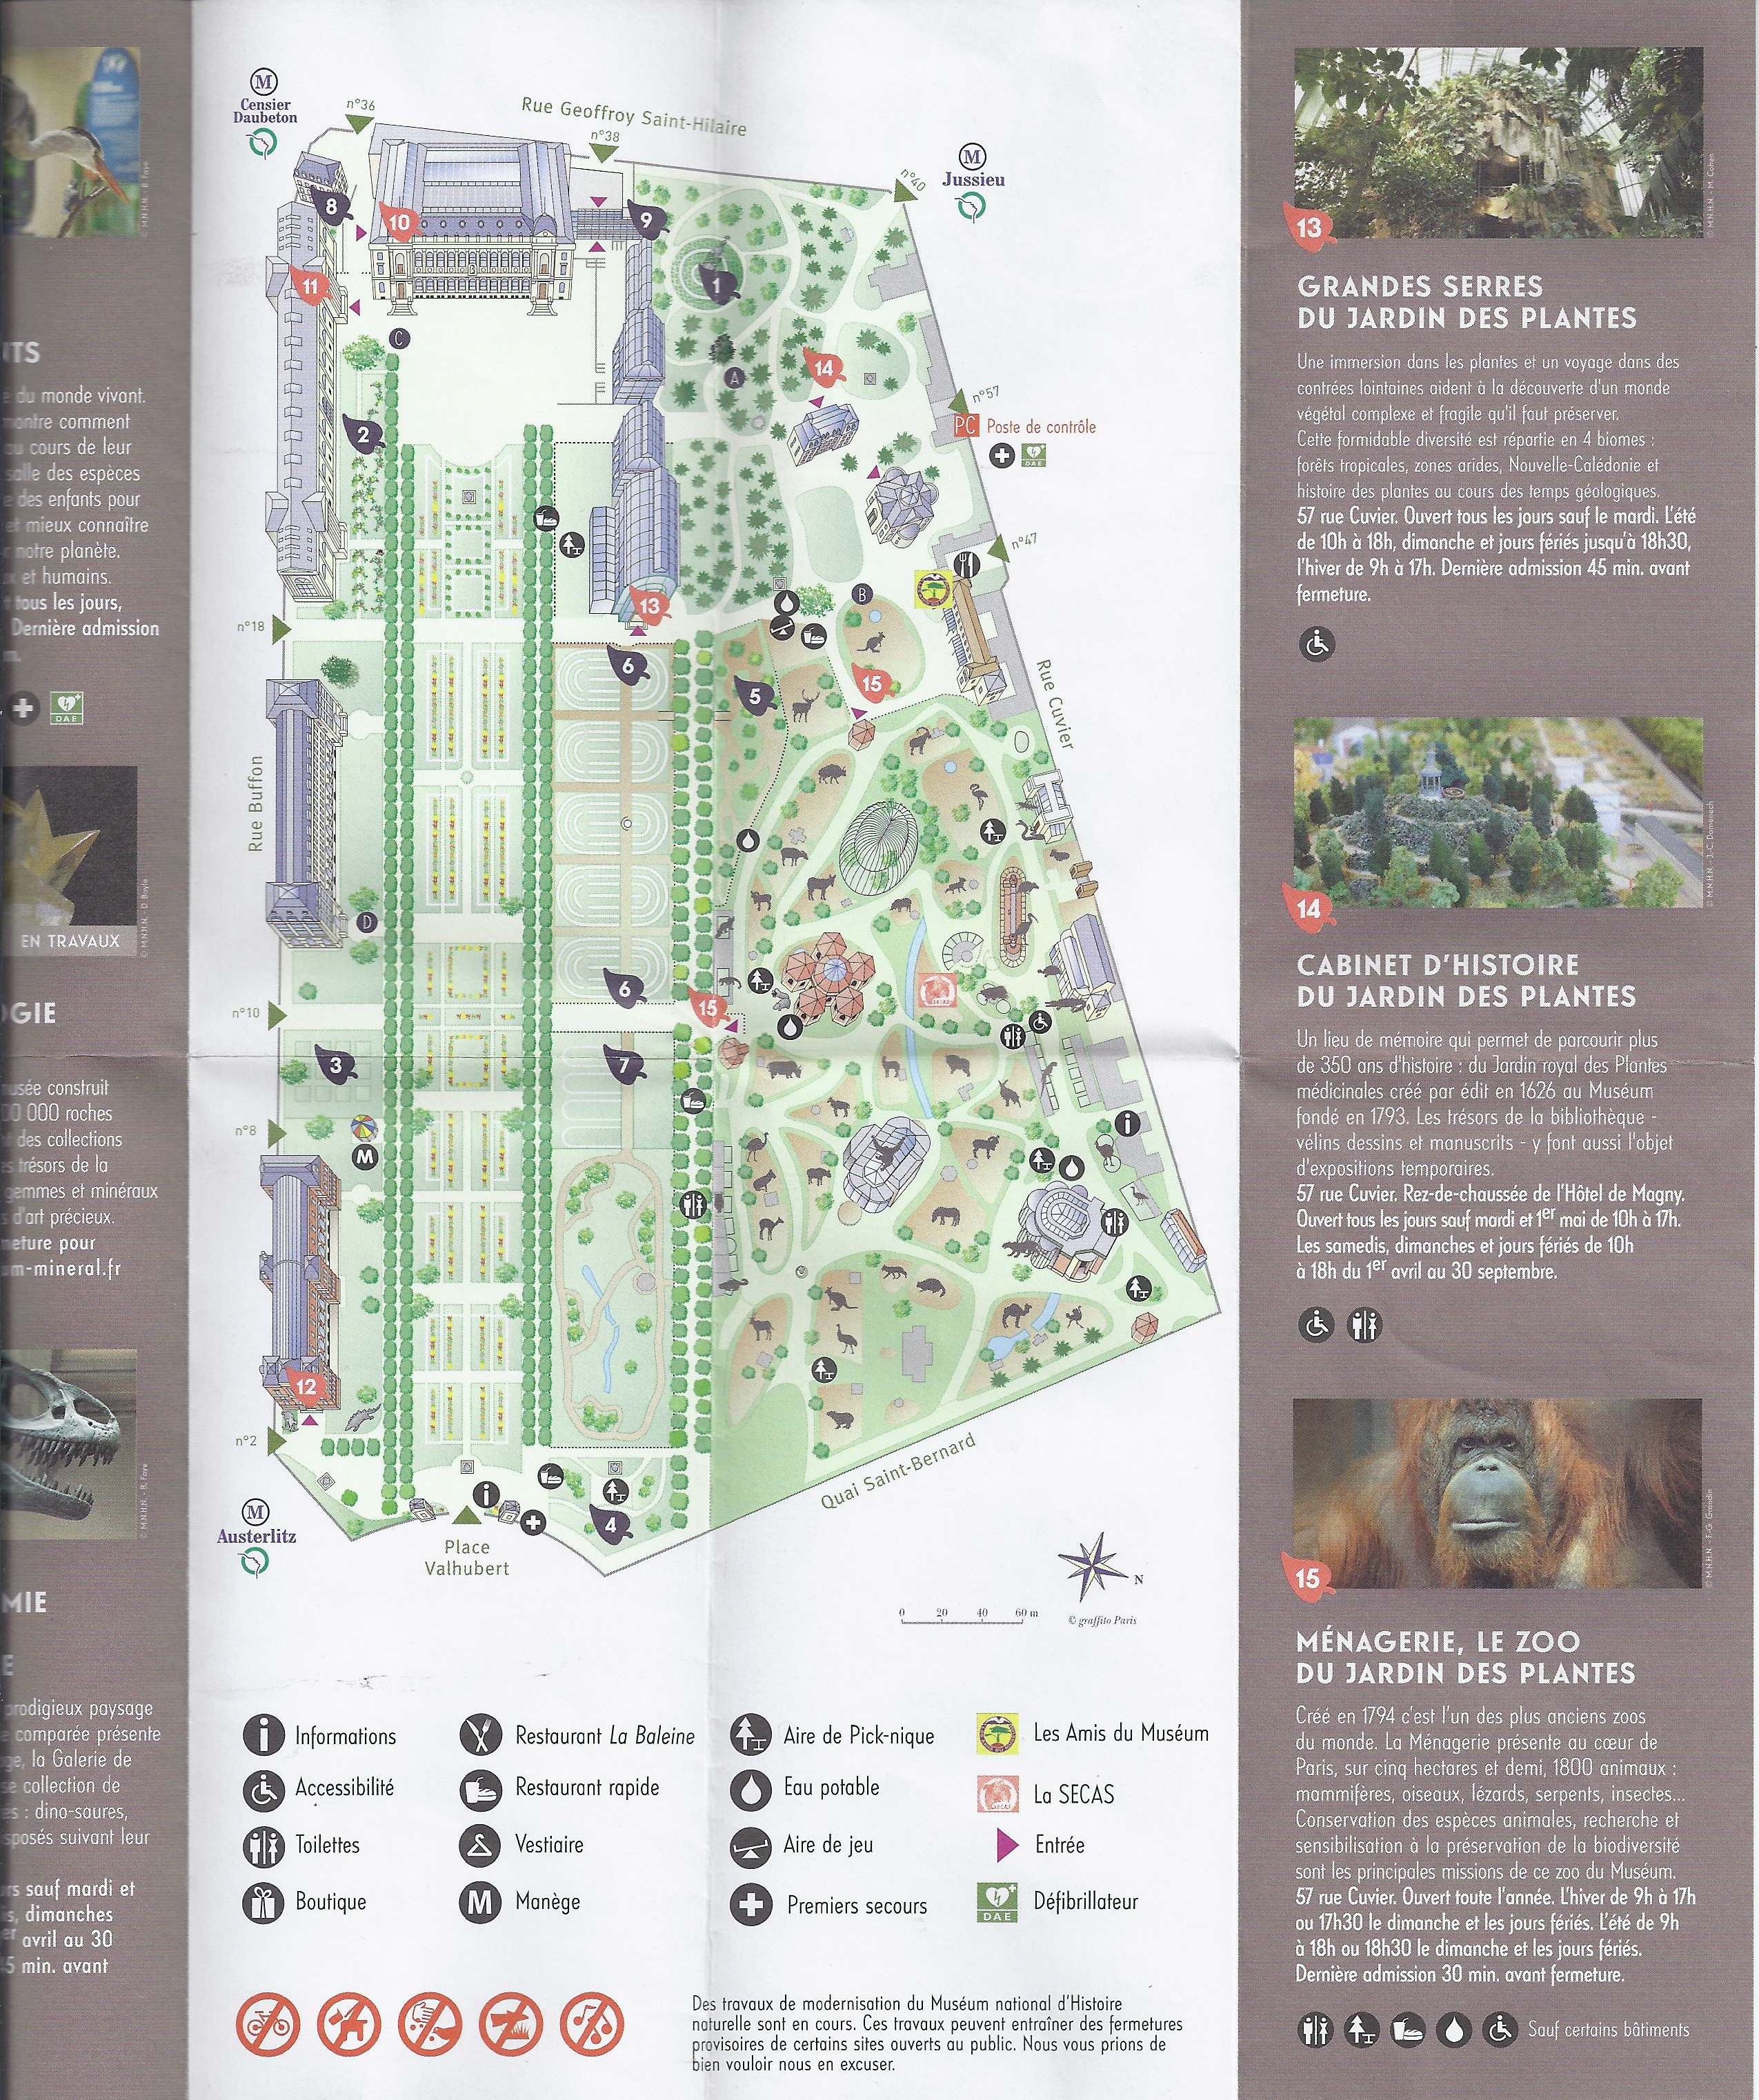 map of jardin des plantes, paris